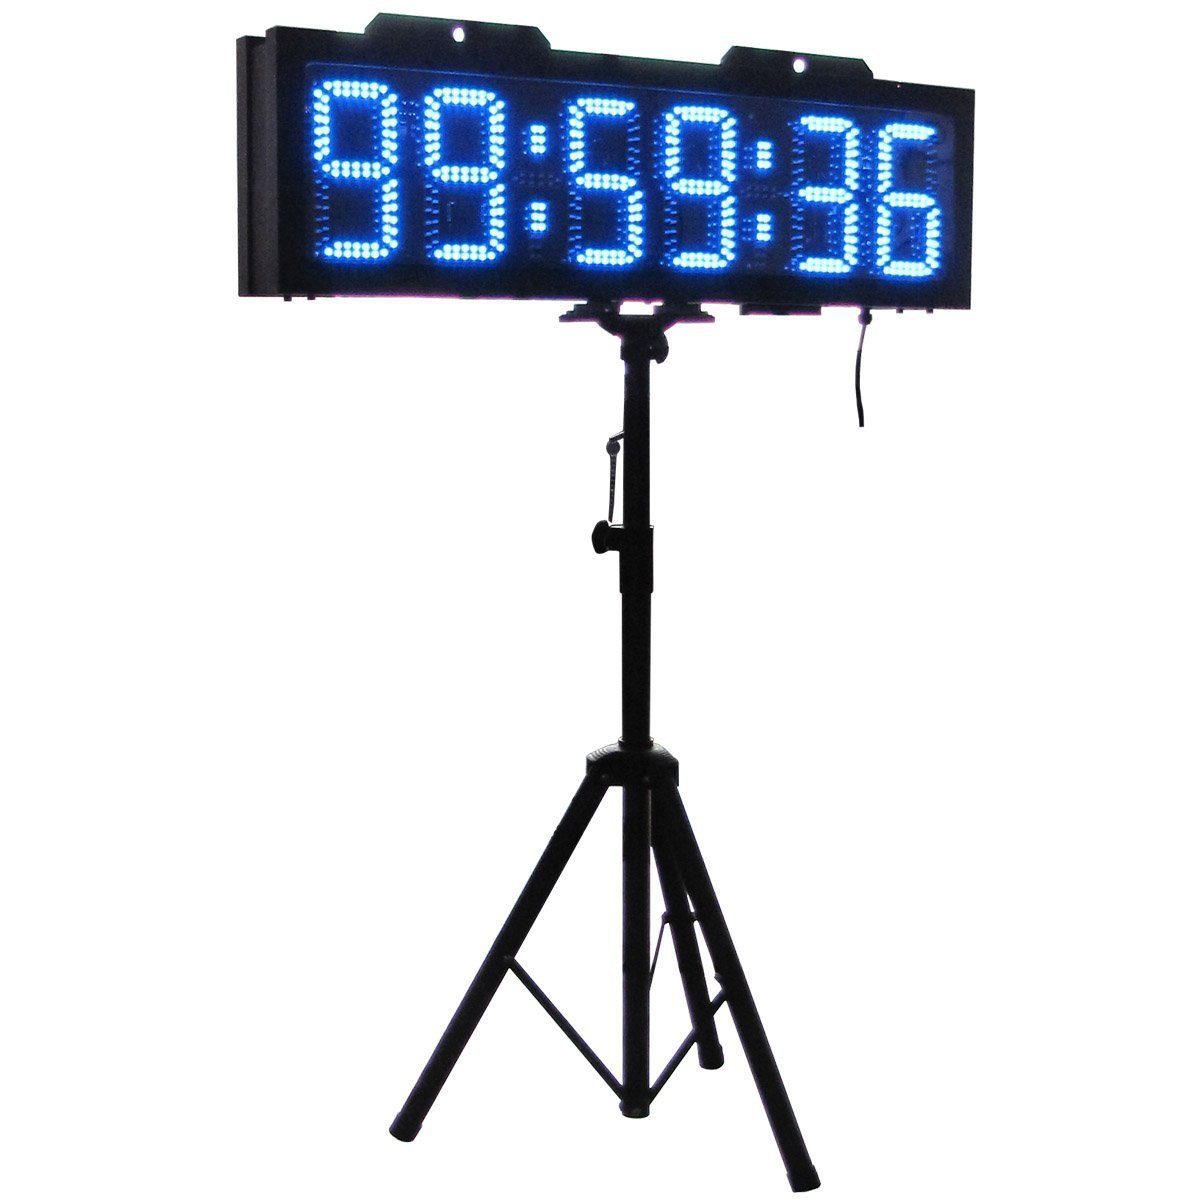 AZOOU 8-inch Double Sided Hours Minutes Seconds LED Race Timing Clock Support Countdown/up Timer Running Events Countdown/up with Tripod Wireless RF Control Blue Color